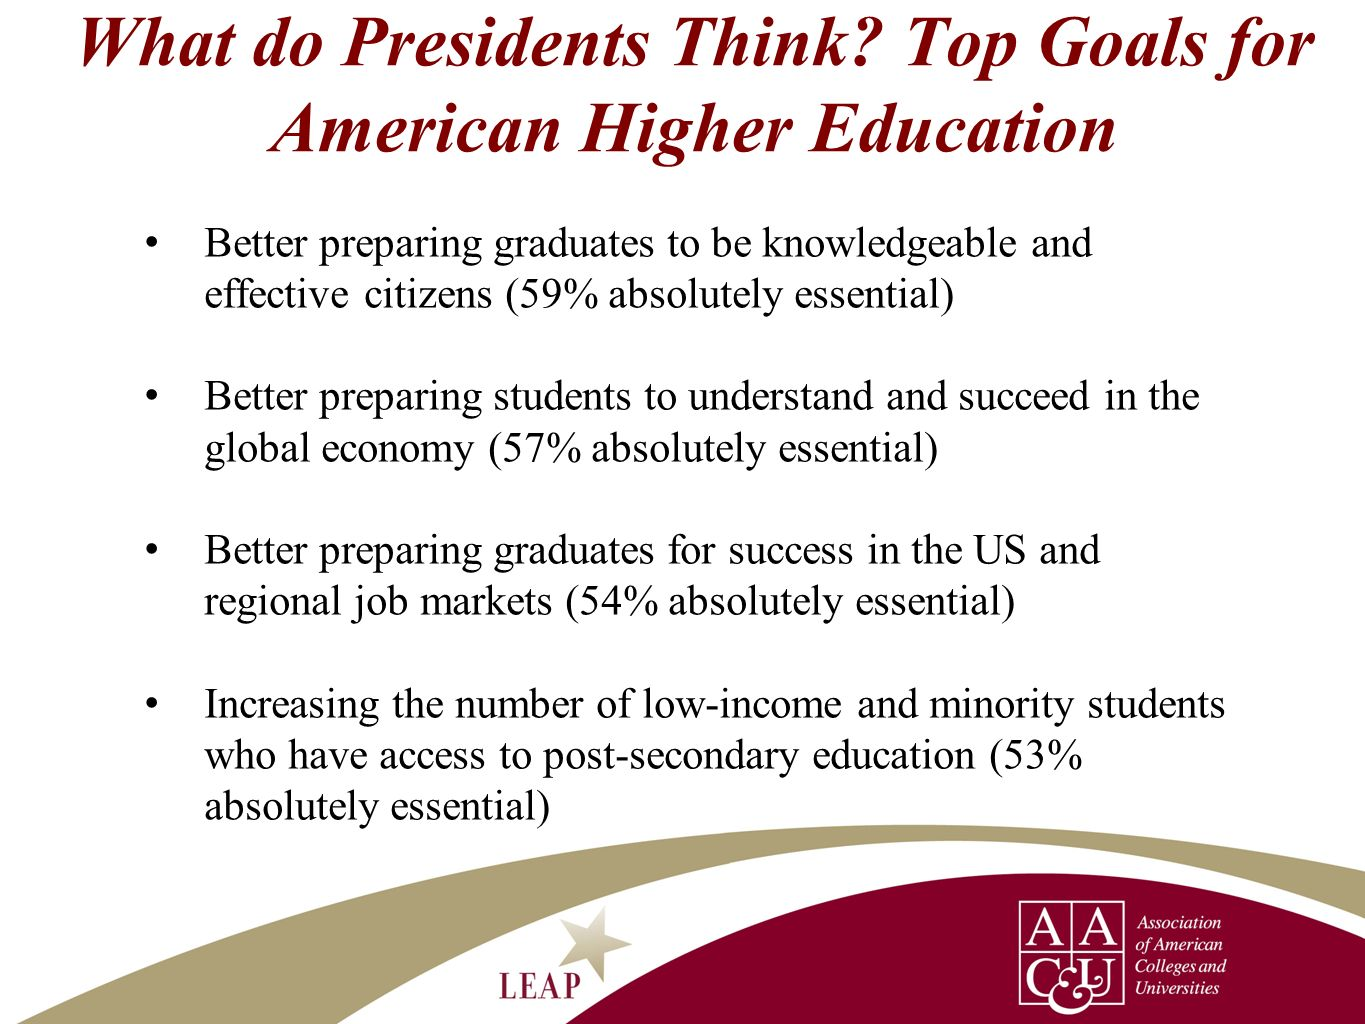 What do Presidents Think Top Goals for American Higher Education